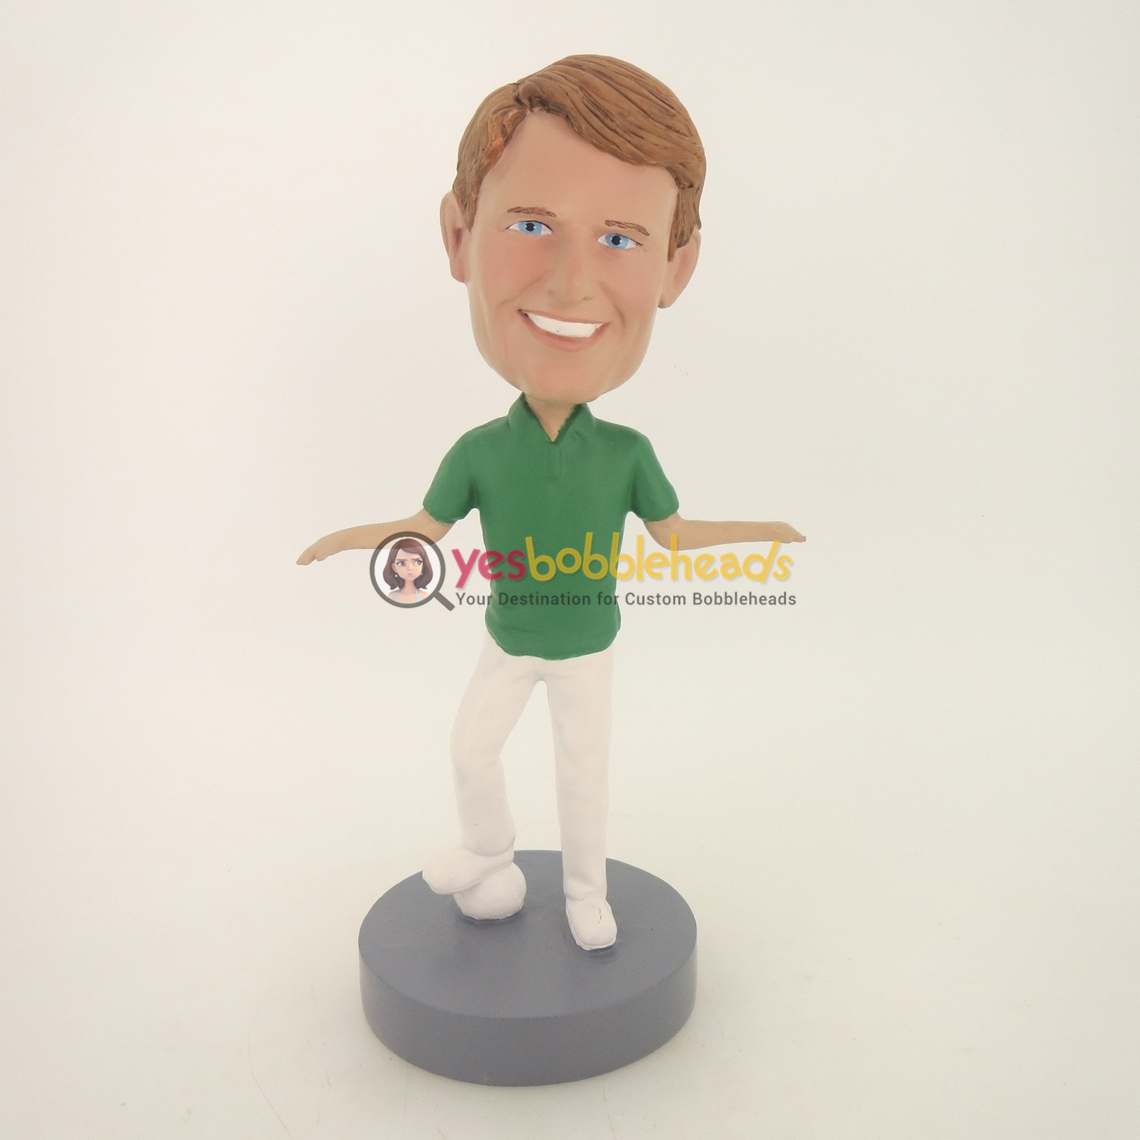 Picture of Custom Bobblehead Doll: Two Hands Out Ball Under Footer Man